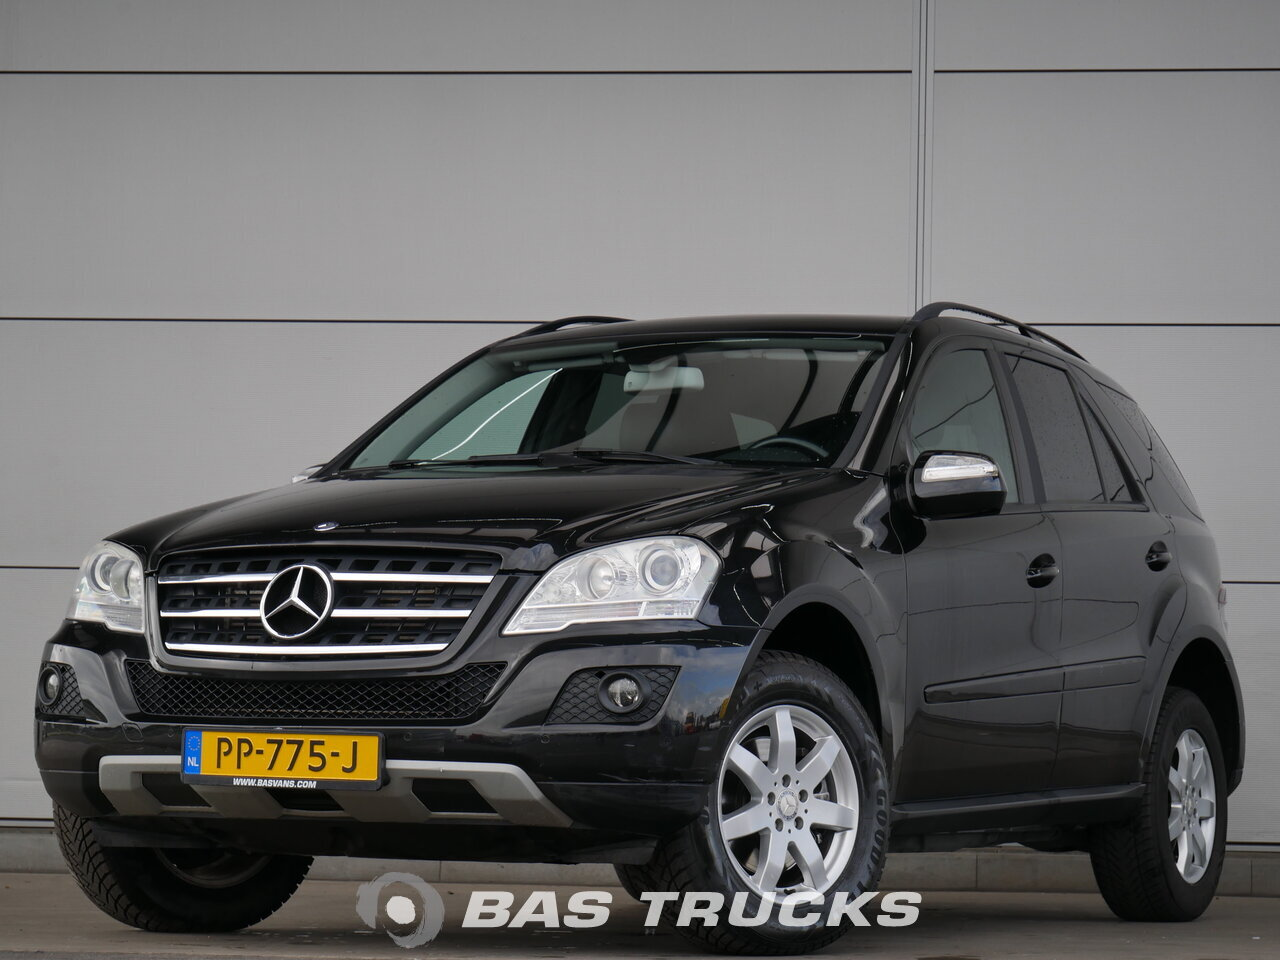 mercedes ml 280 cdi 4matic pkw 9500 bas trucks. Black Bedroom Furniture Sets. Home Design Ideas